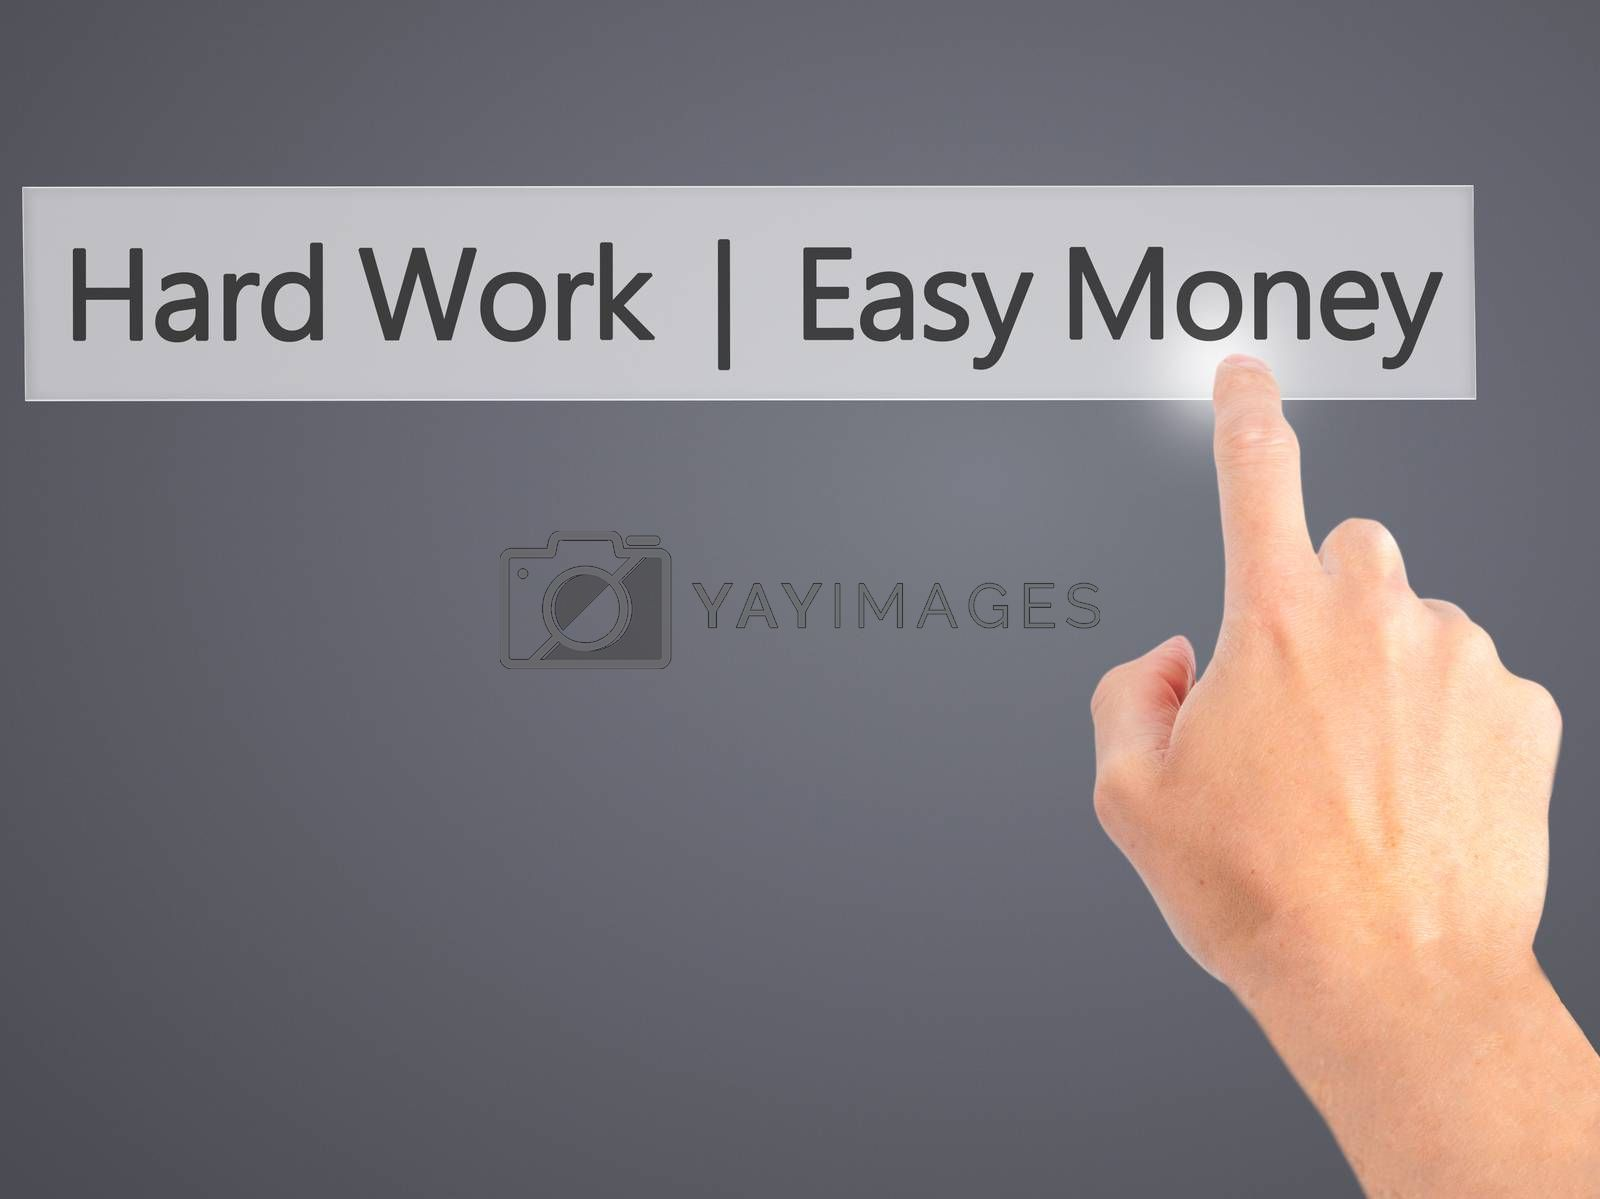 Hard Work  Easy Money - Hand pressing a button on blurred backgr by netsay.net